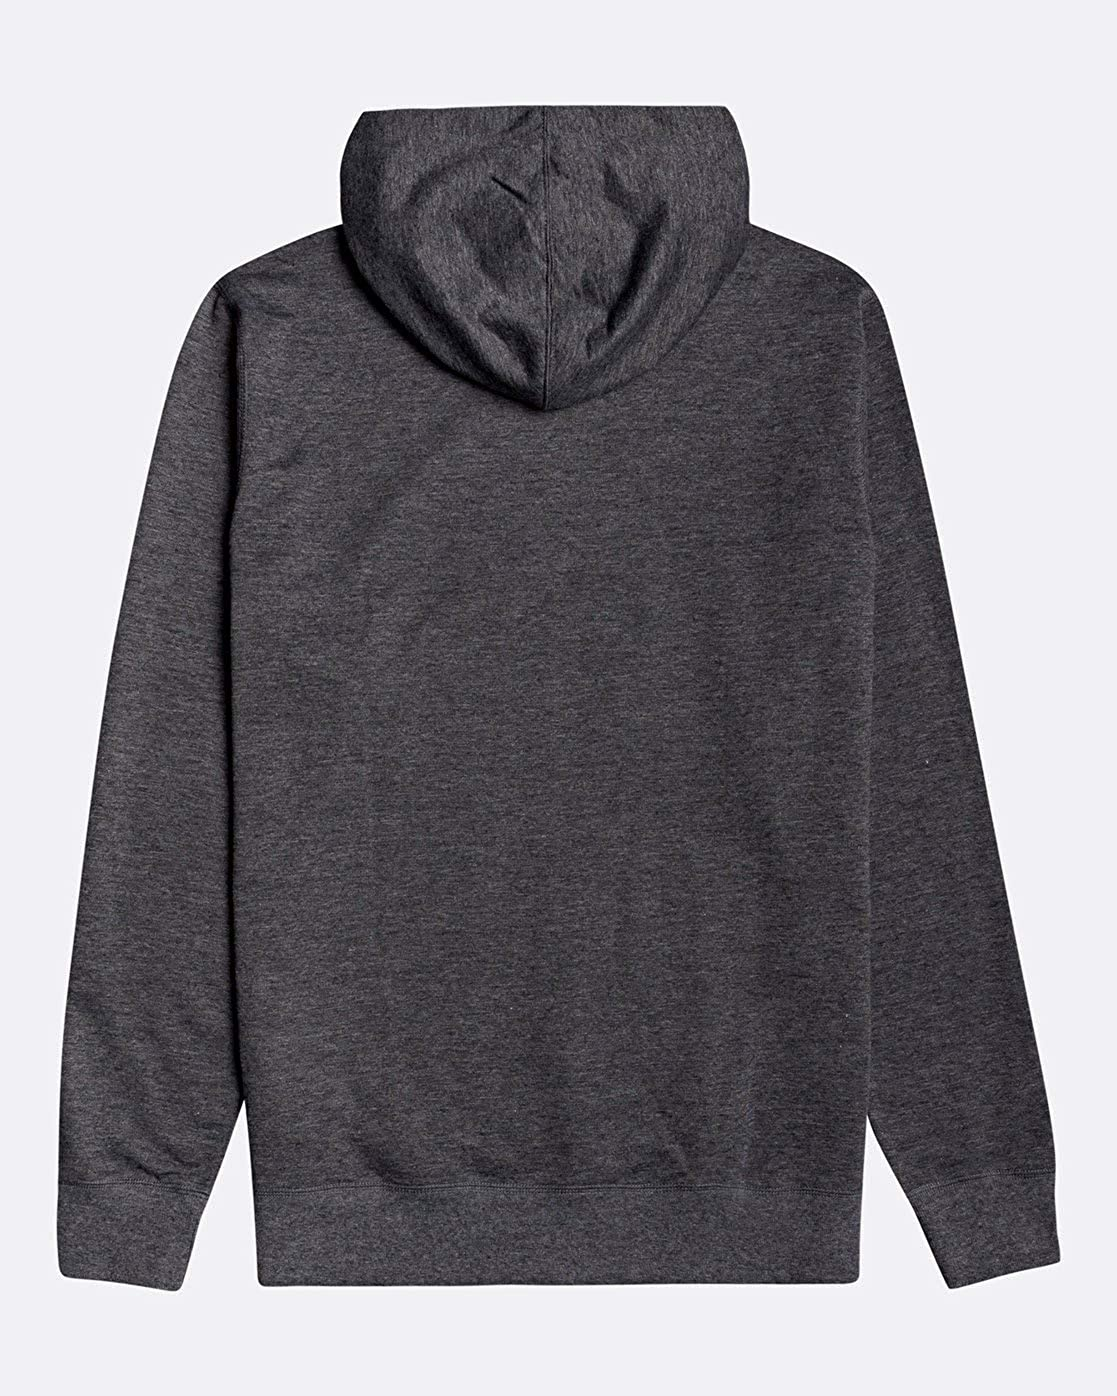 BILLABONG All Day - Sweat À Capuche pour Homme Sweatshirt à Capuche Homme Noir